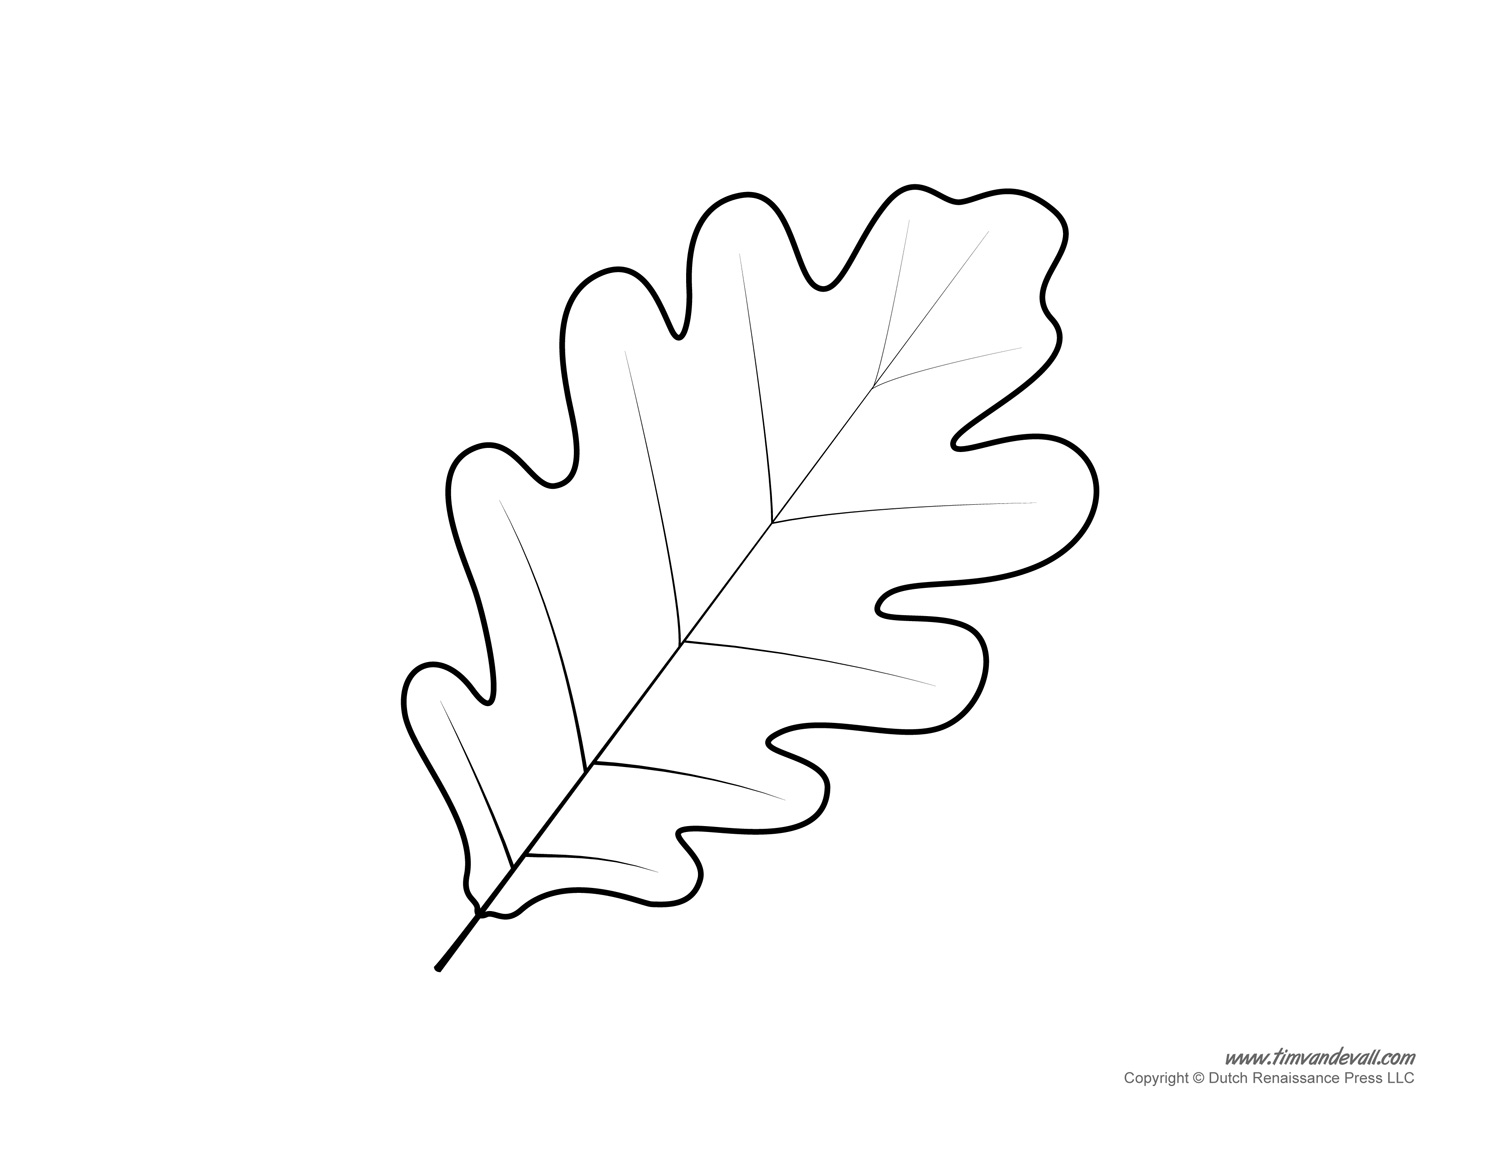 Leaf Templates amp Coloring Pages For Kids Printables